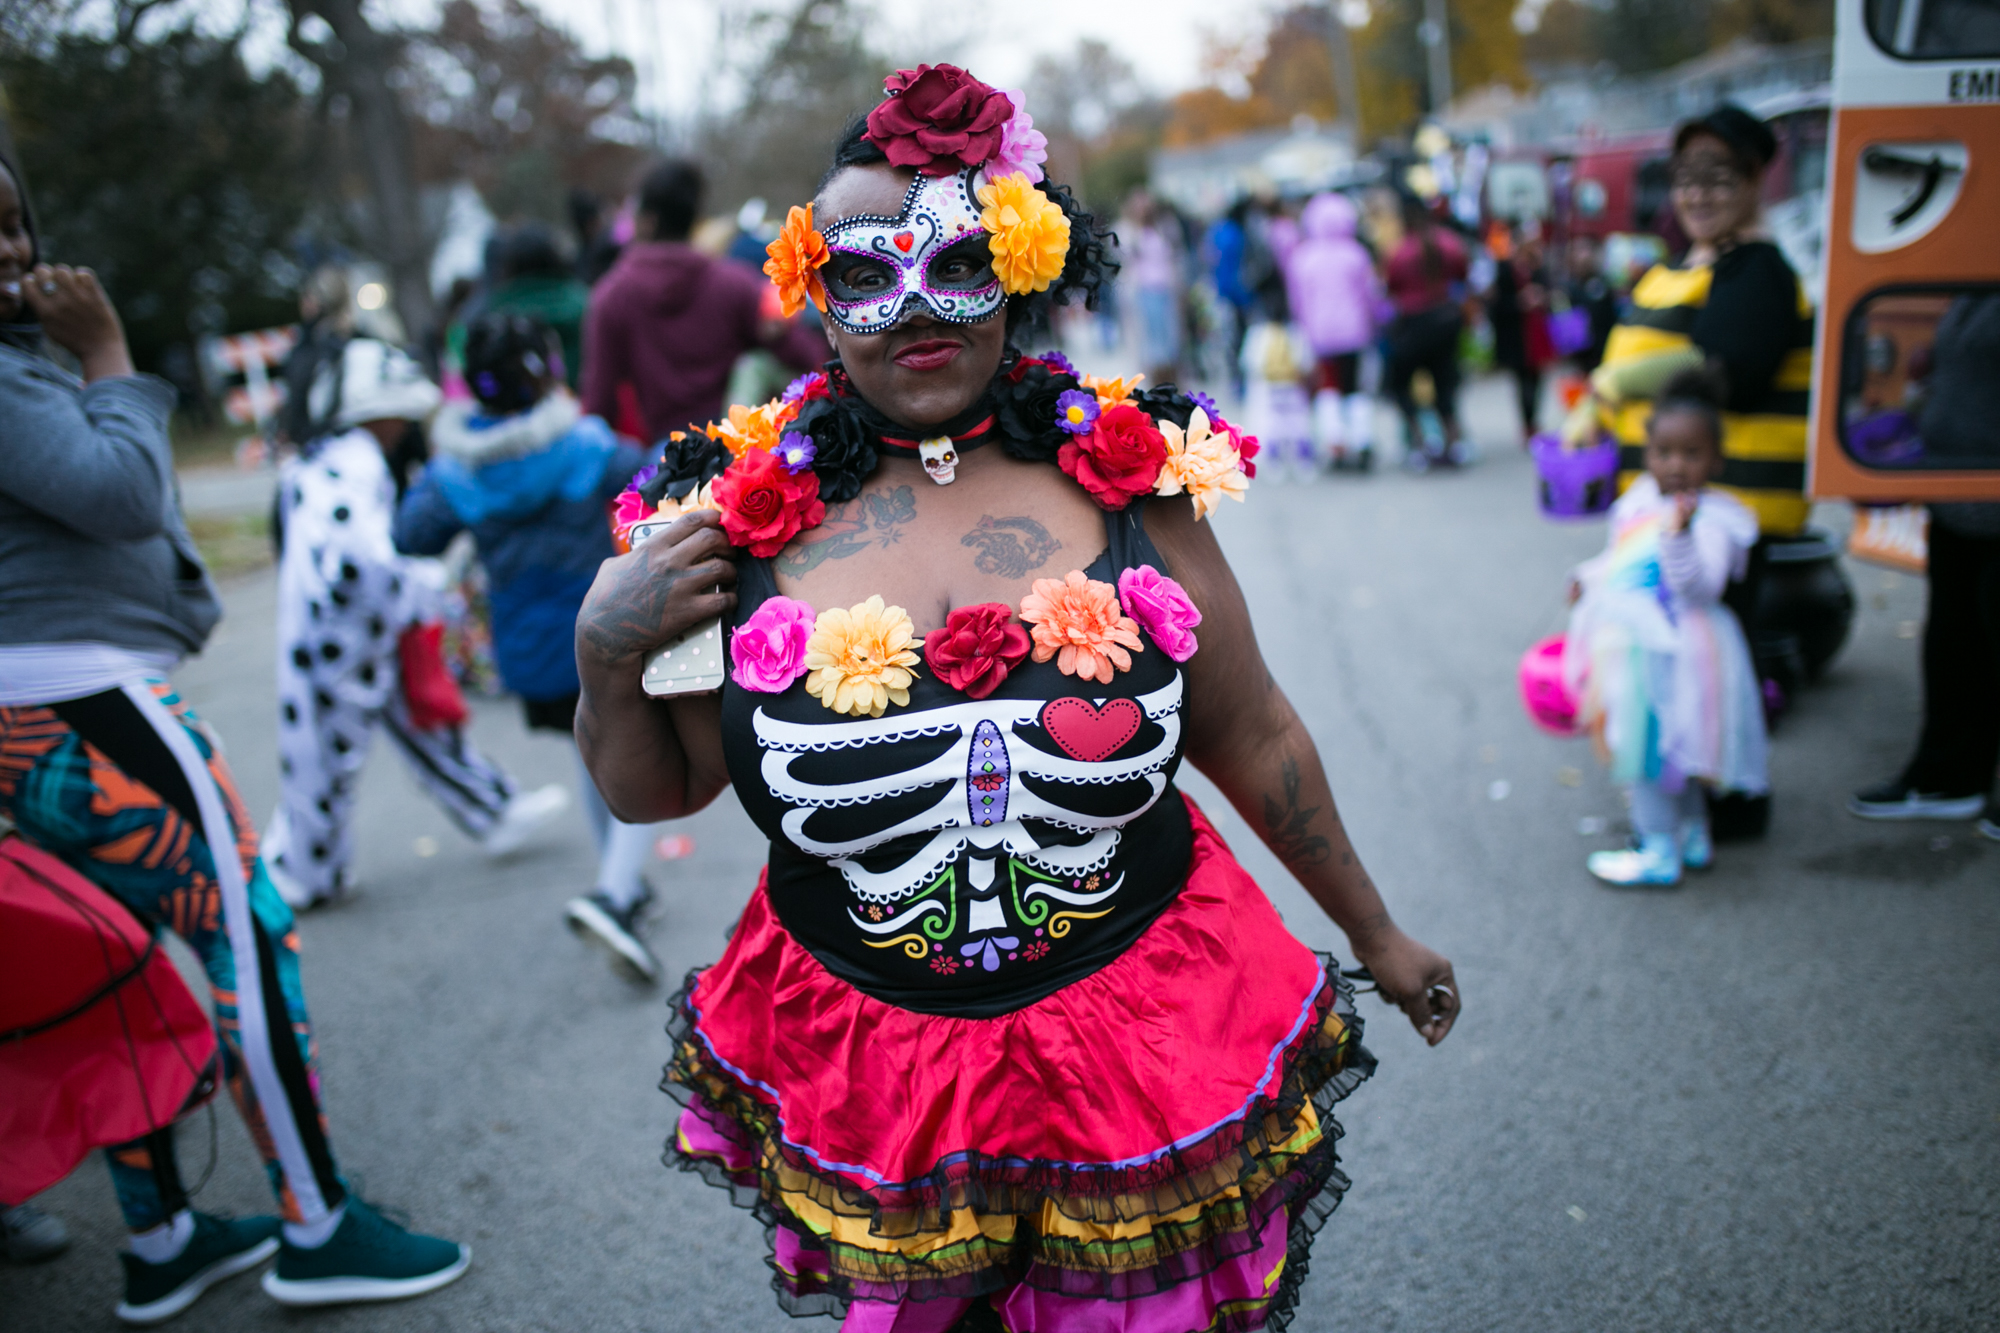 Andrews Park neighborhood families participate in their trunk-or-treat event on Wednesday, Oct. 31, 2018, at Andrews Park in Rockford. [SCOTT P. YATES/RRSTAR.COM STAFF]